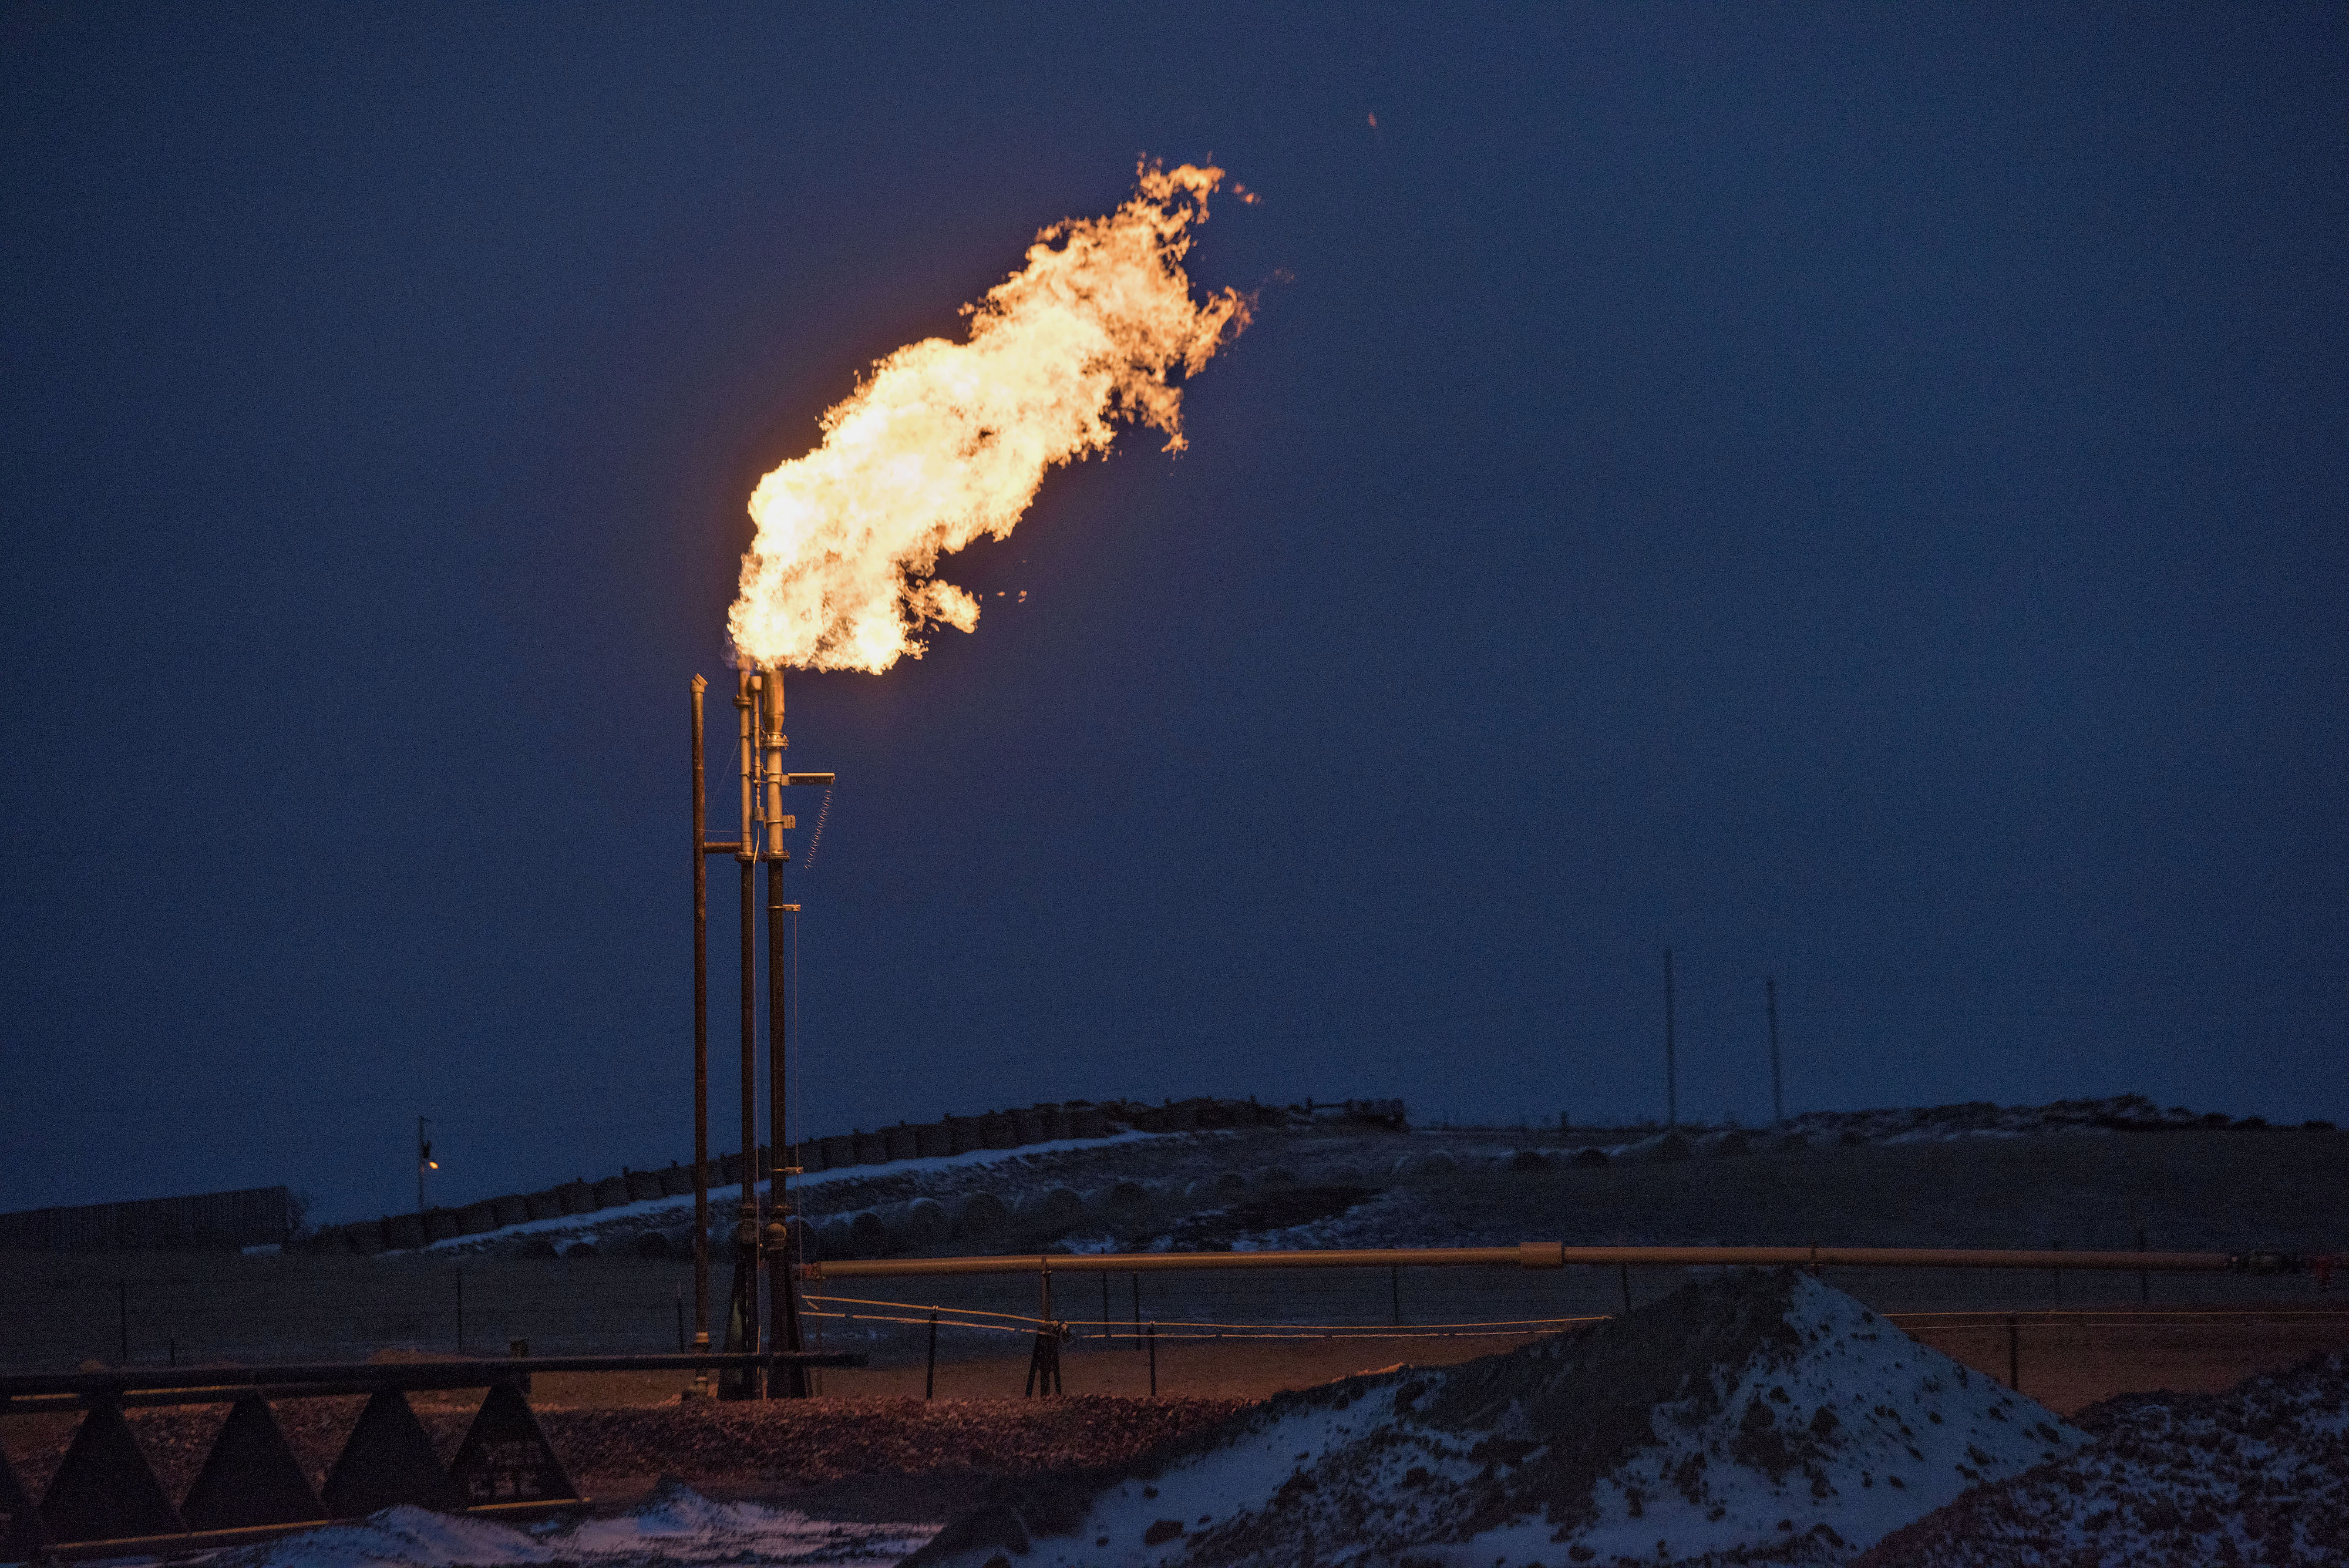 A gas flare burns at an oil well site near Sidney, Montana, U.S., on Saturday, Feb. 14, 2015. Photographer: Daniel Acker/Bloomberg